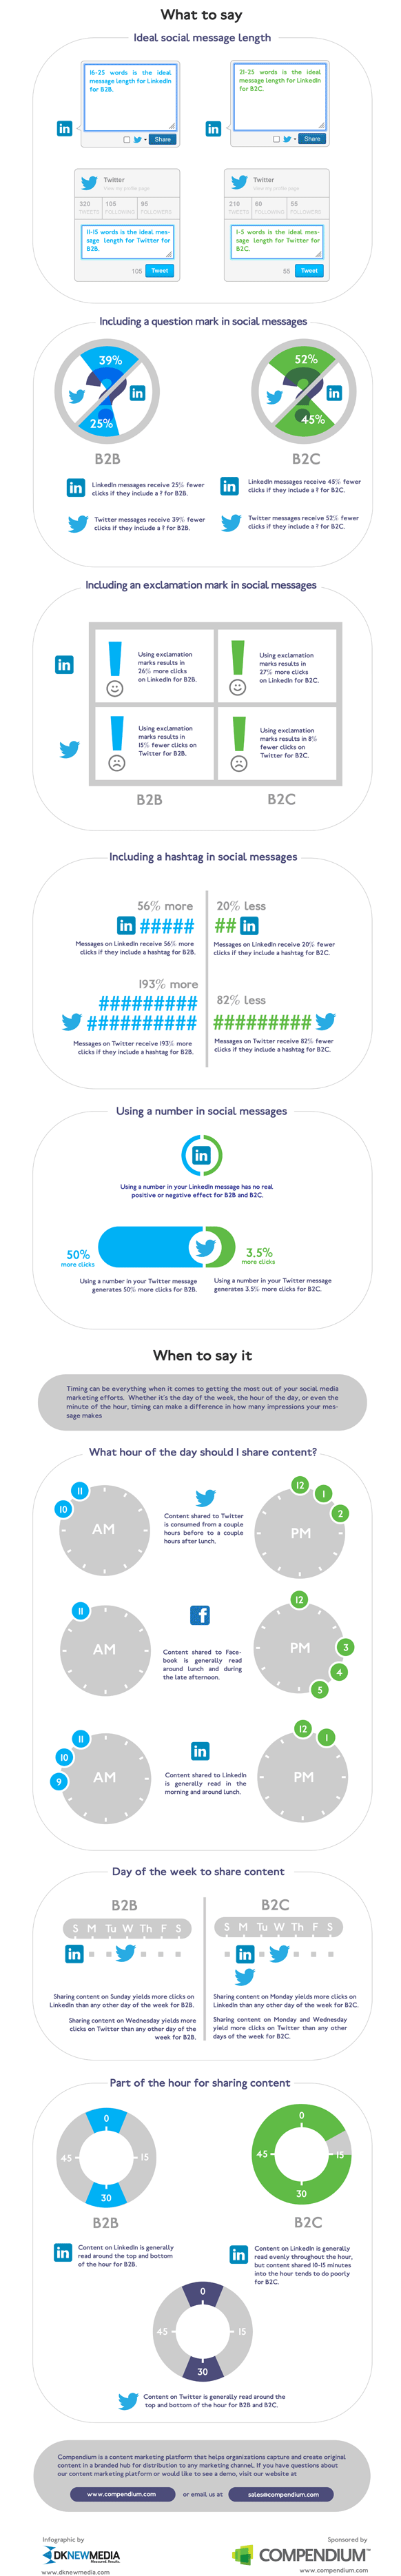 another infographic social media